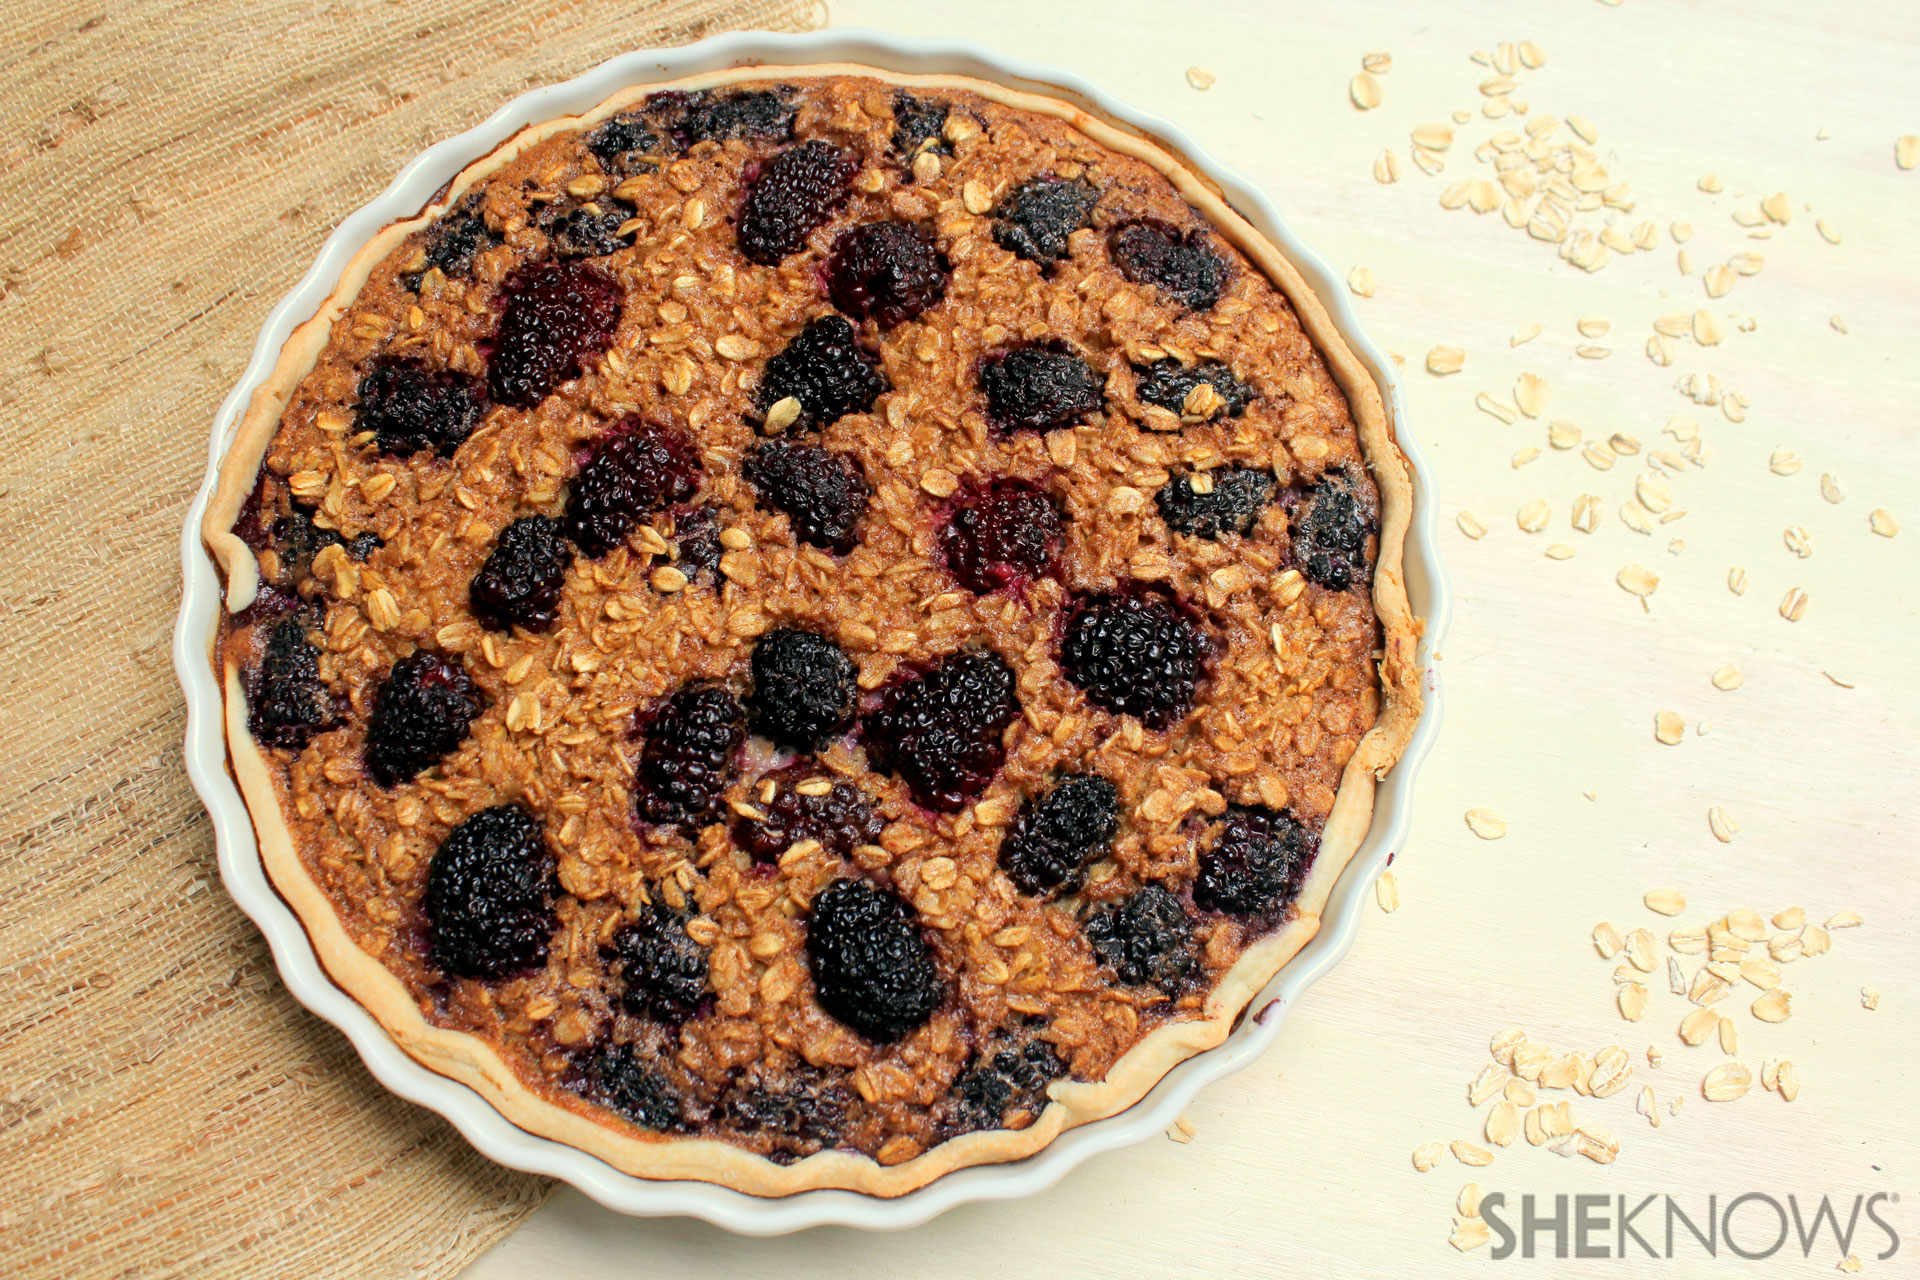 Oatmeal and Blackberry Pie 4